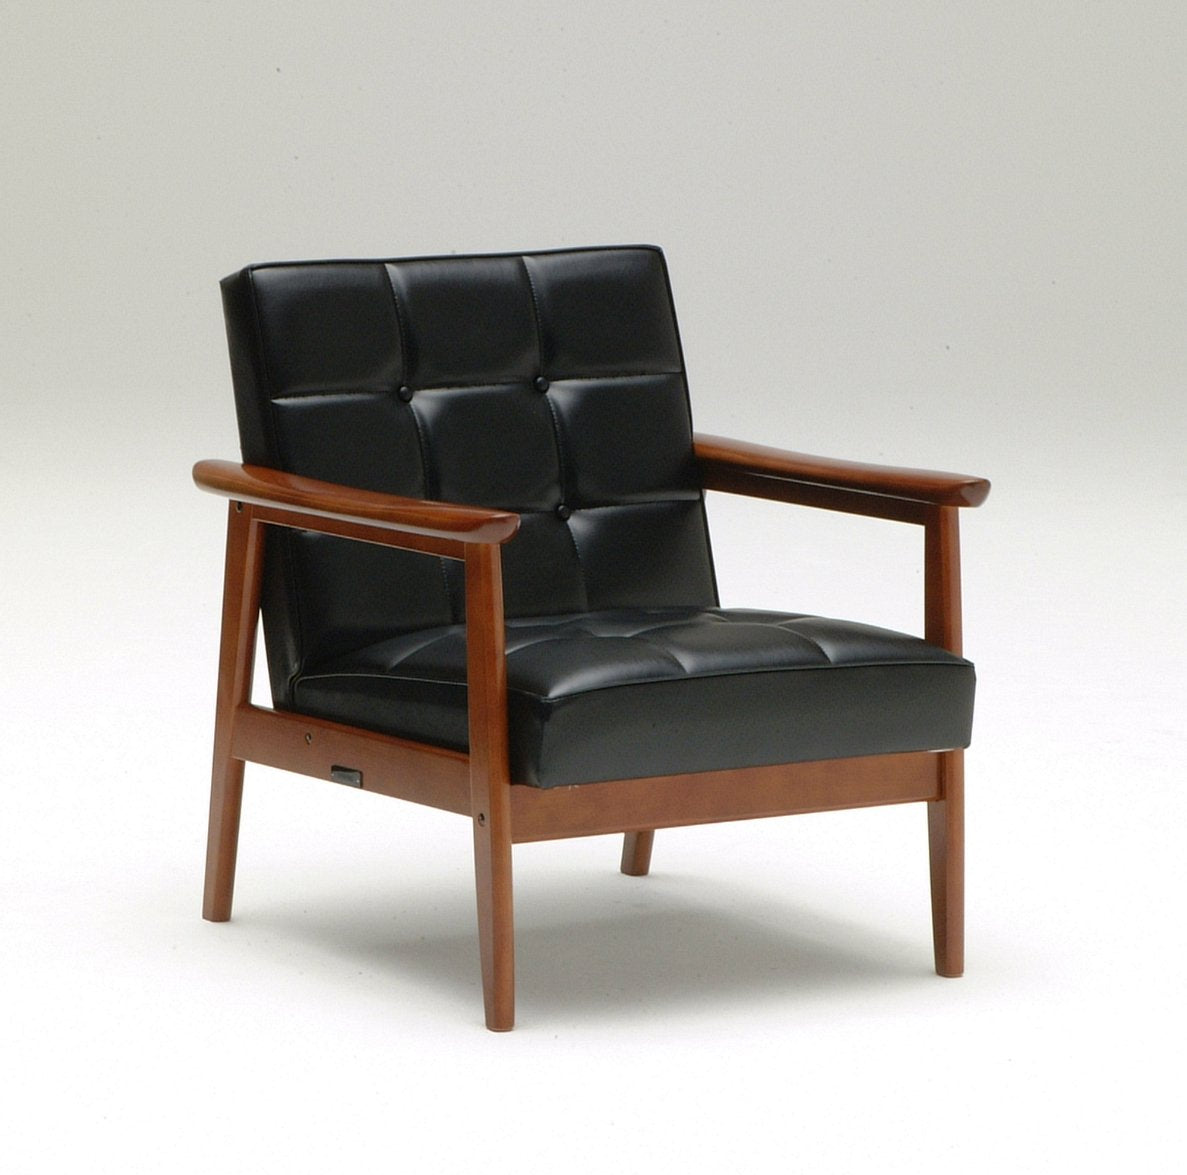 Karimoku60 - k chair one seater standard black - Armchair